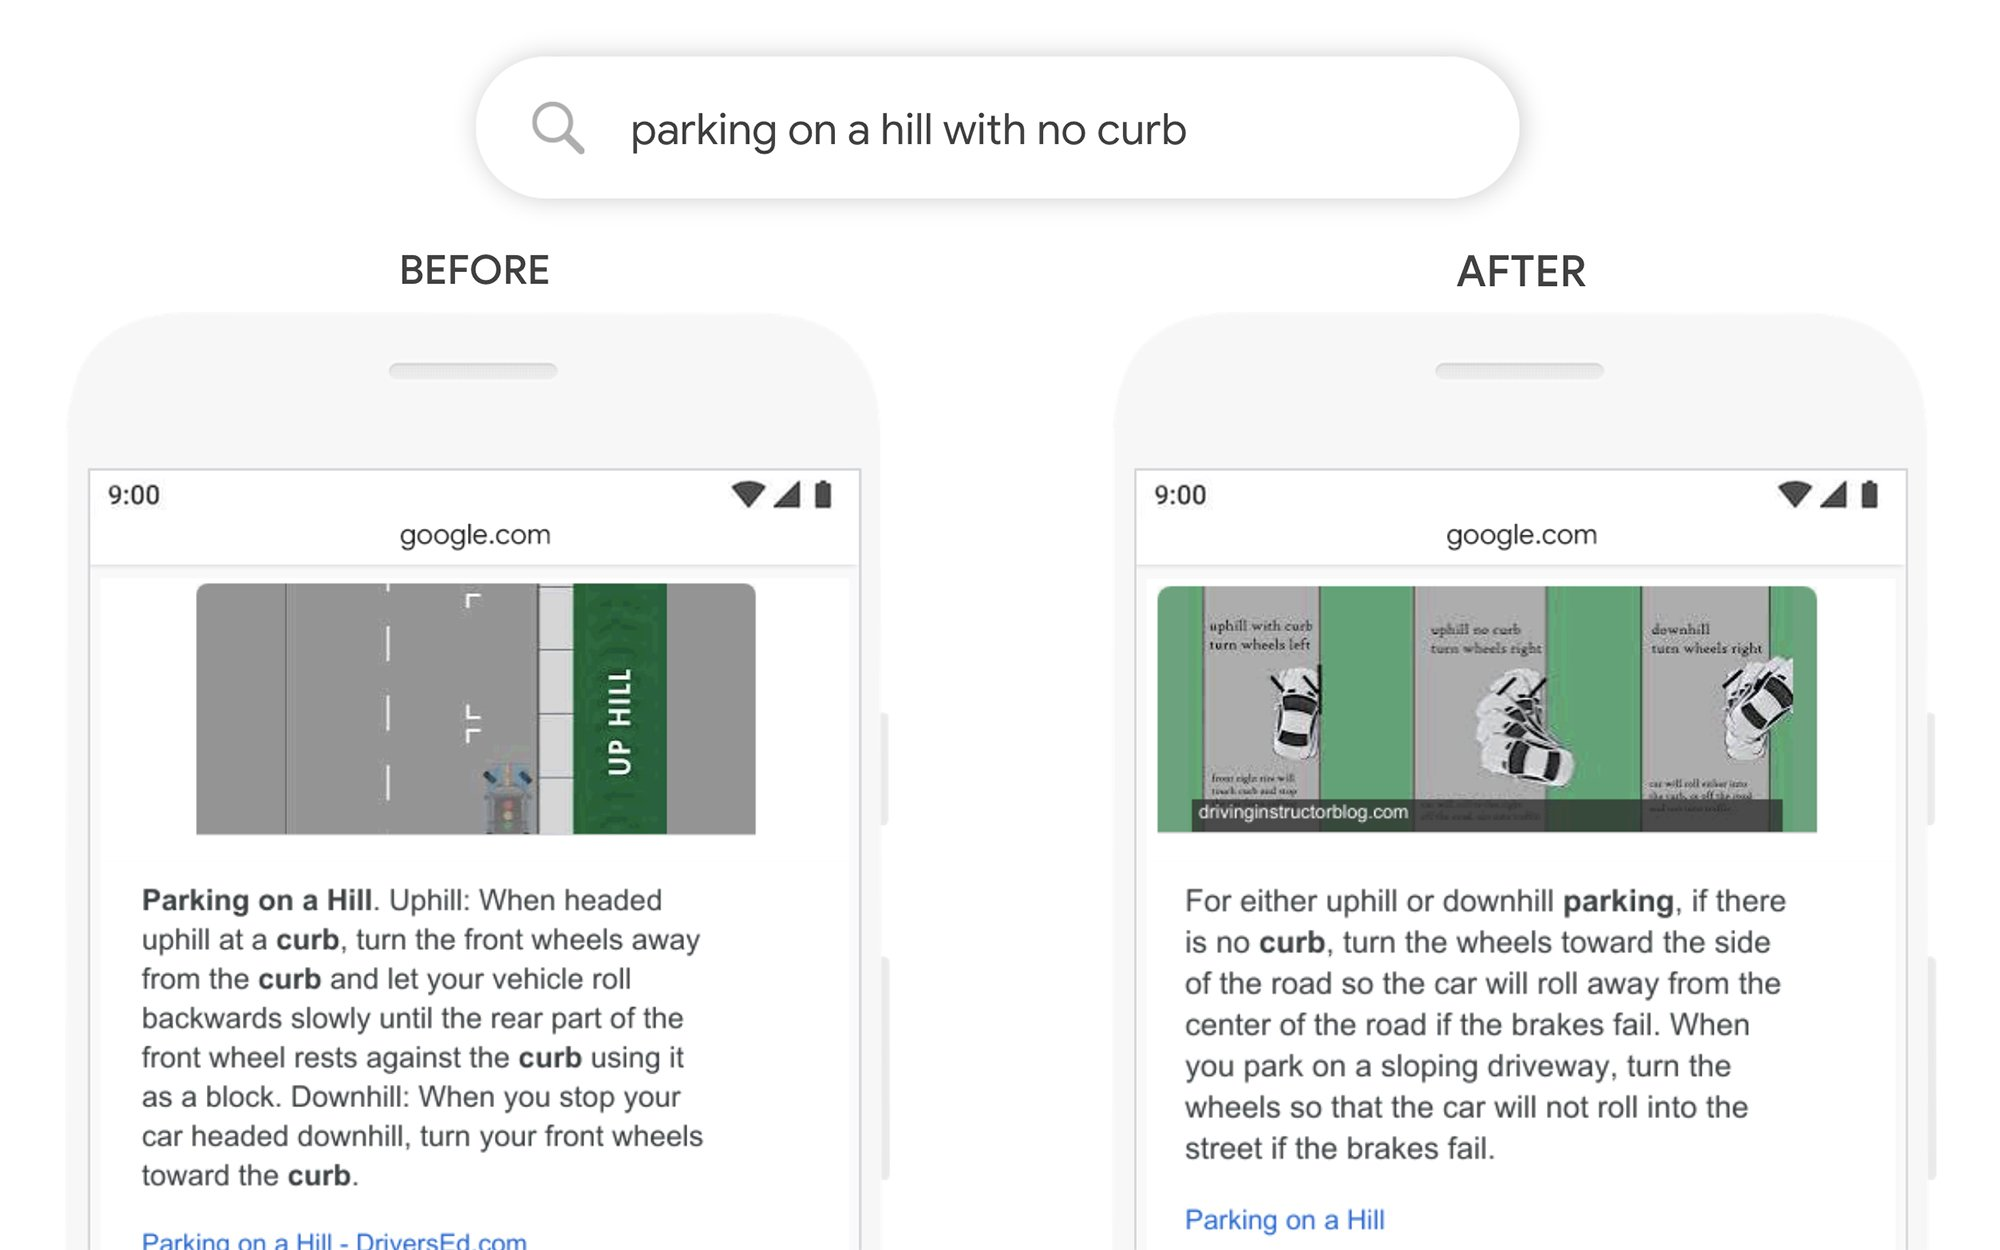 Google-BERT-Update-Query-Parking-on-a-hill-with-no-curb